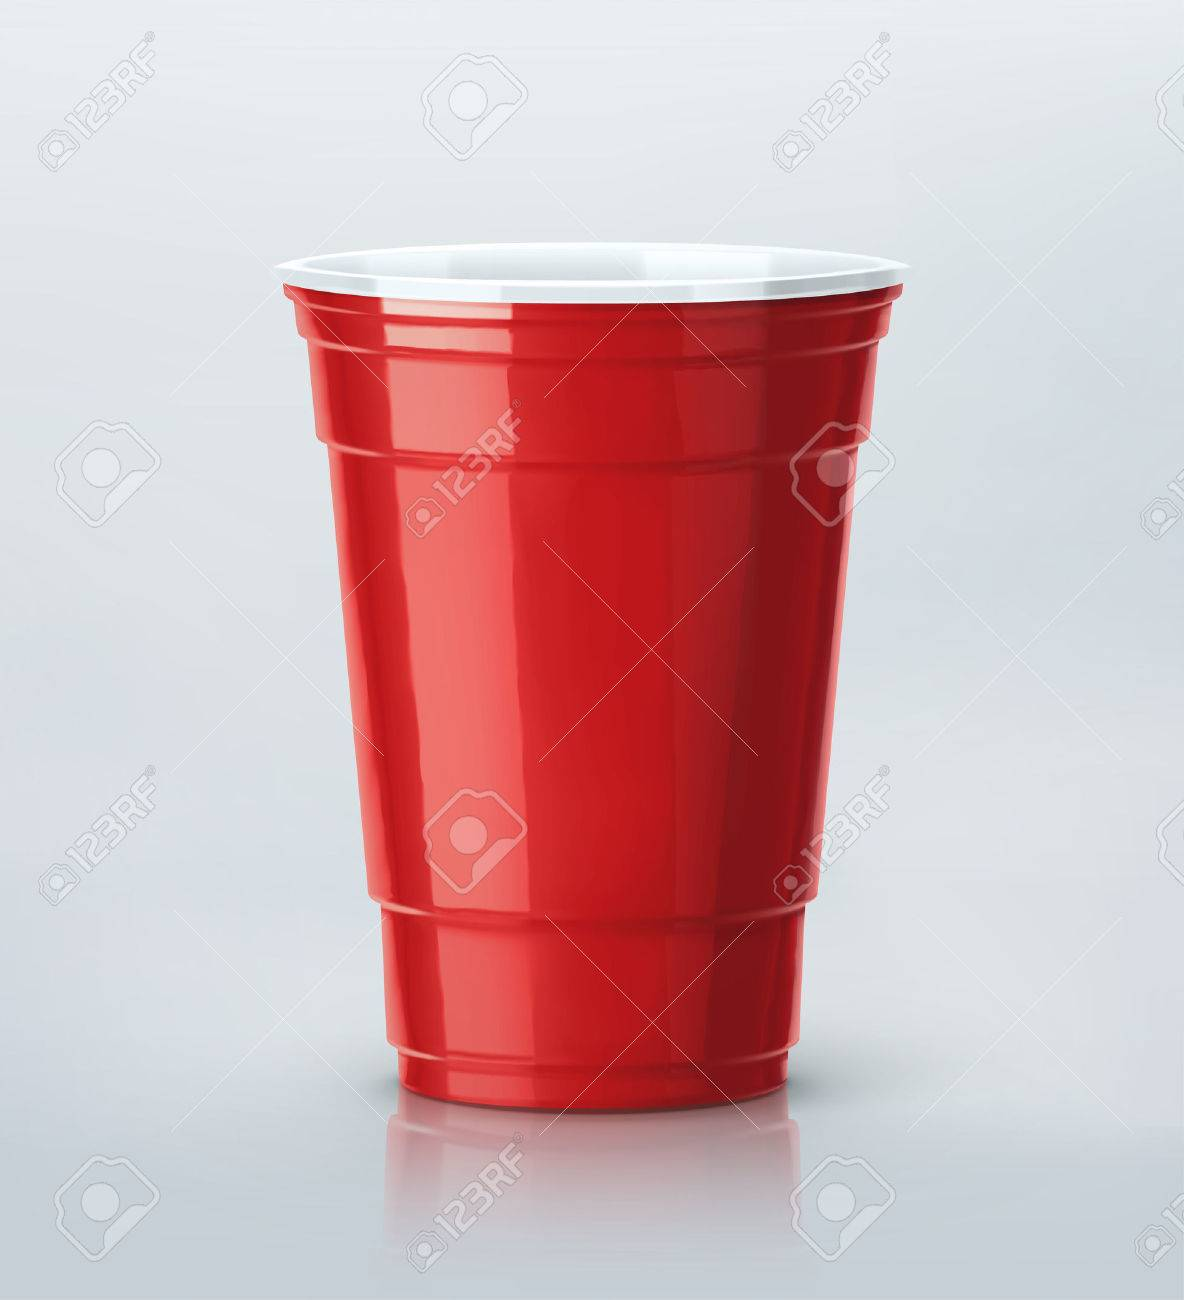 Isolated red party cup Standard-Bild - 43876924